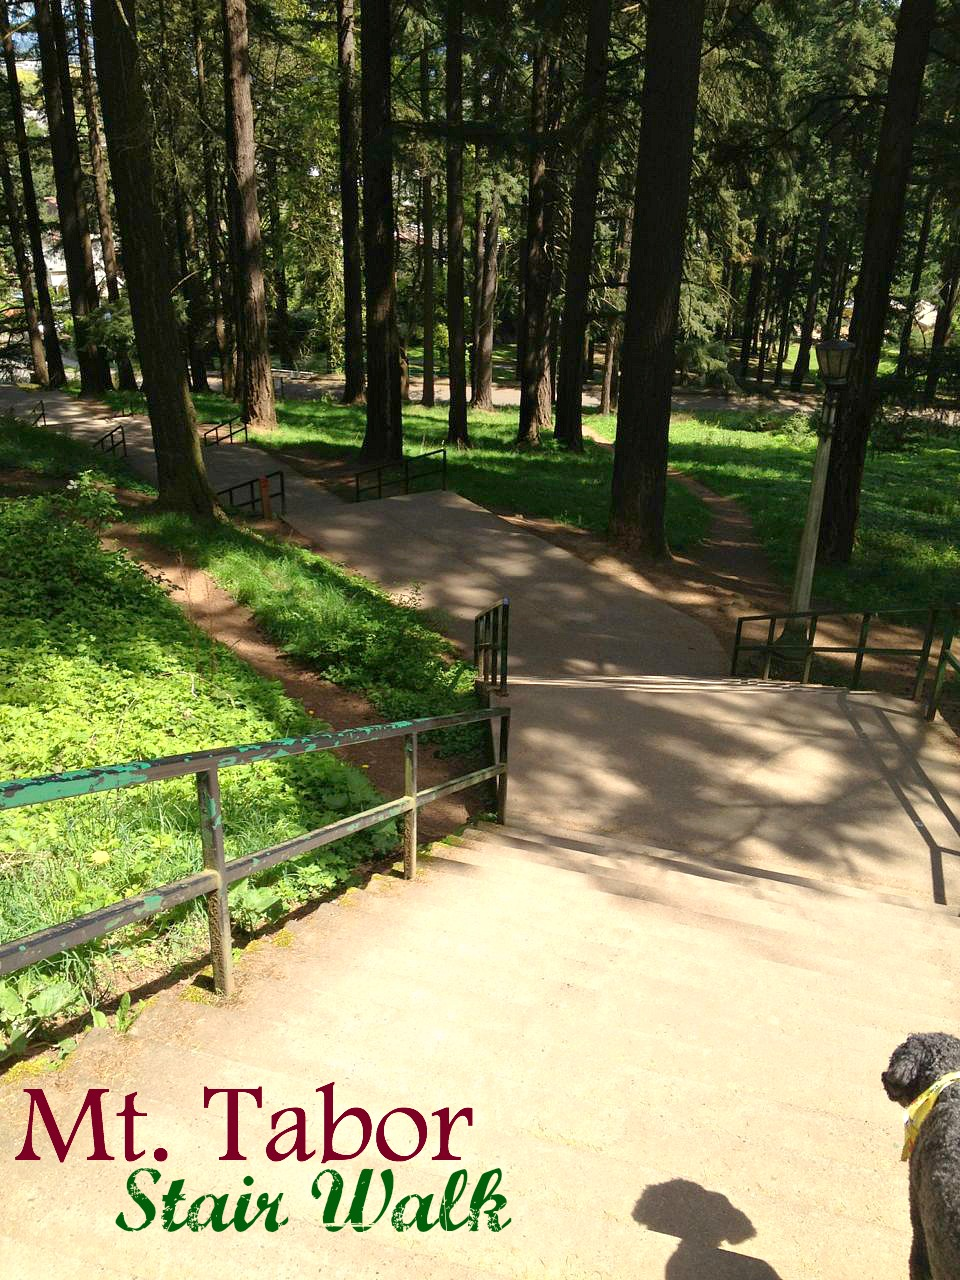 Enjoy a Mt. Tabor Stair Walk